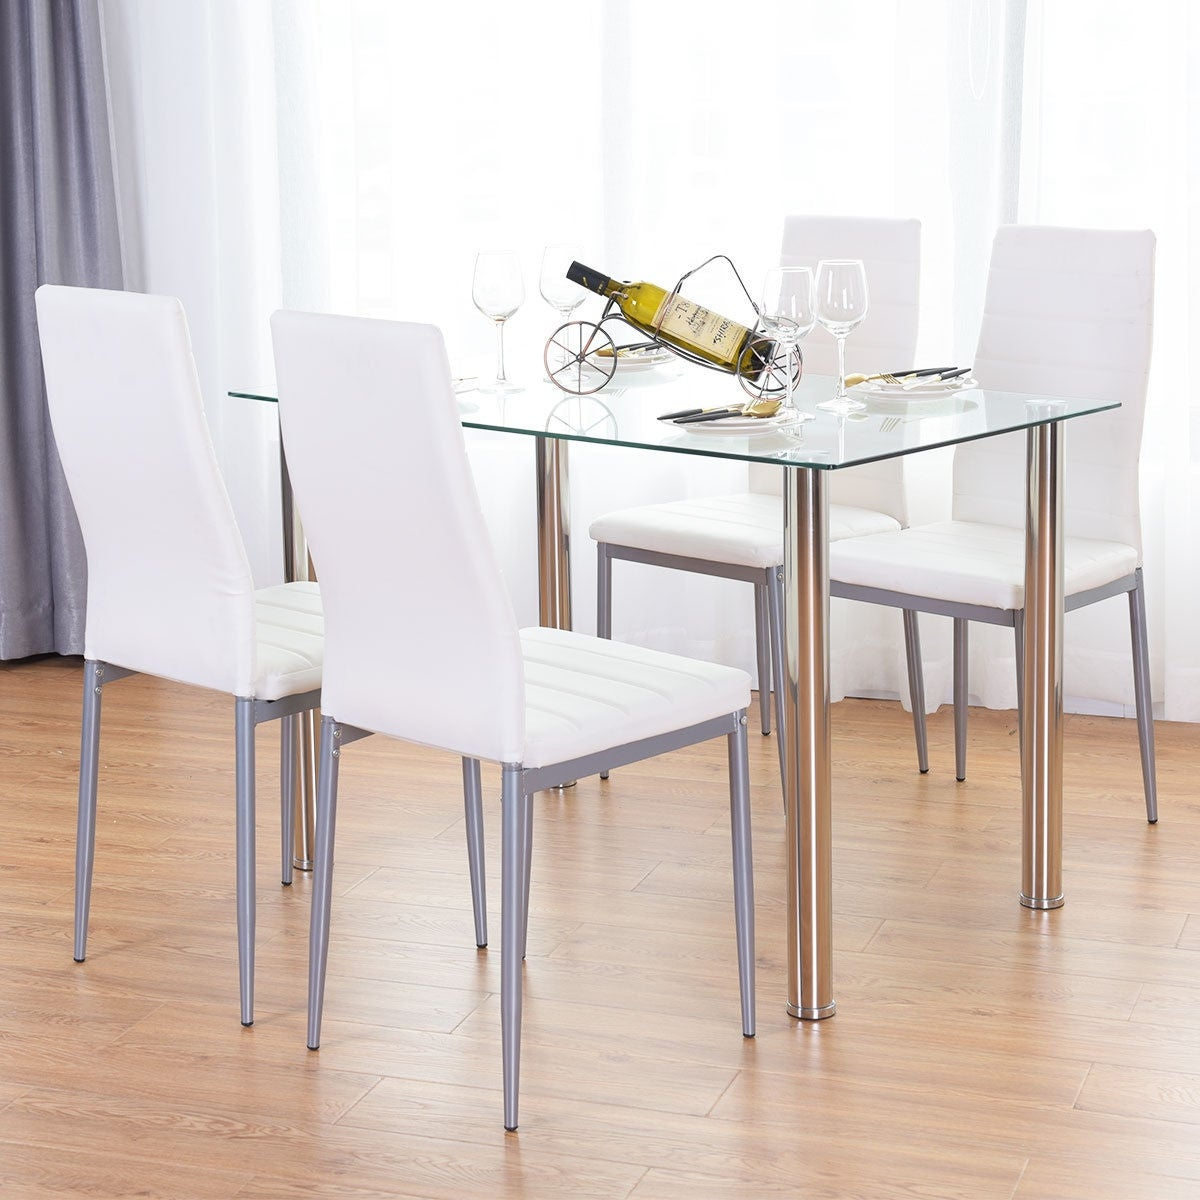 online store 7d8d3 283de Costway 5 Piece Dining Set Table and 4 Chairs Glass Metal Kitchen Breakfast  Furniture - as pic